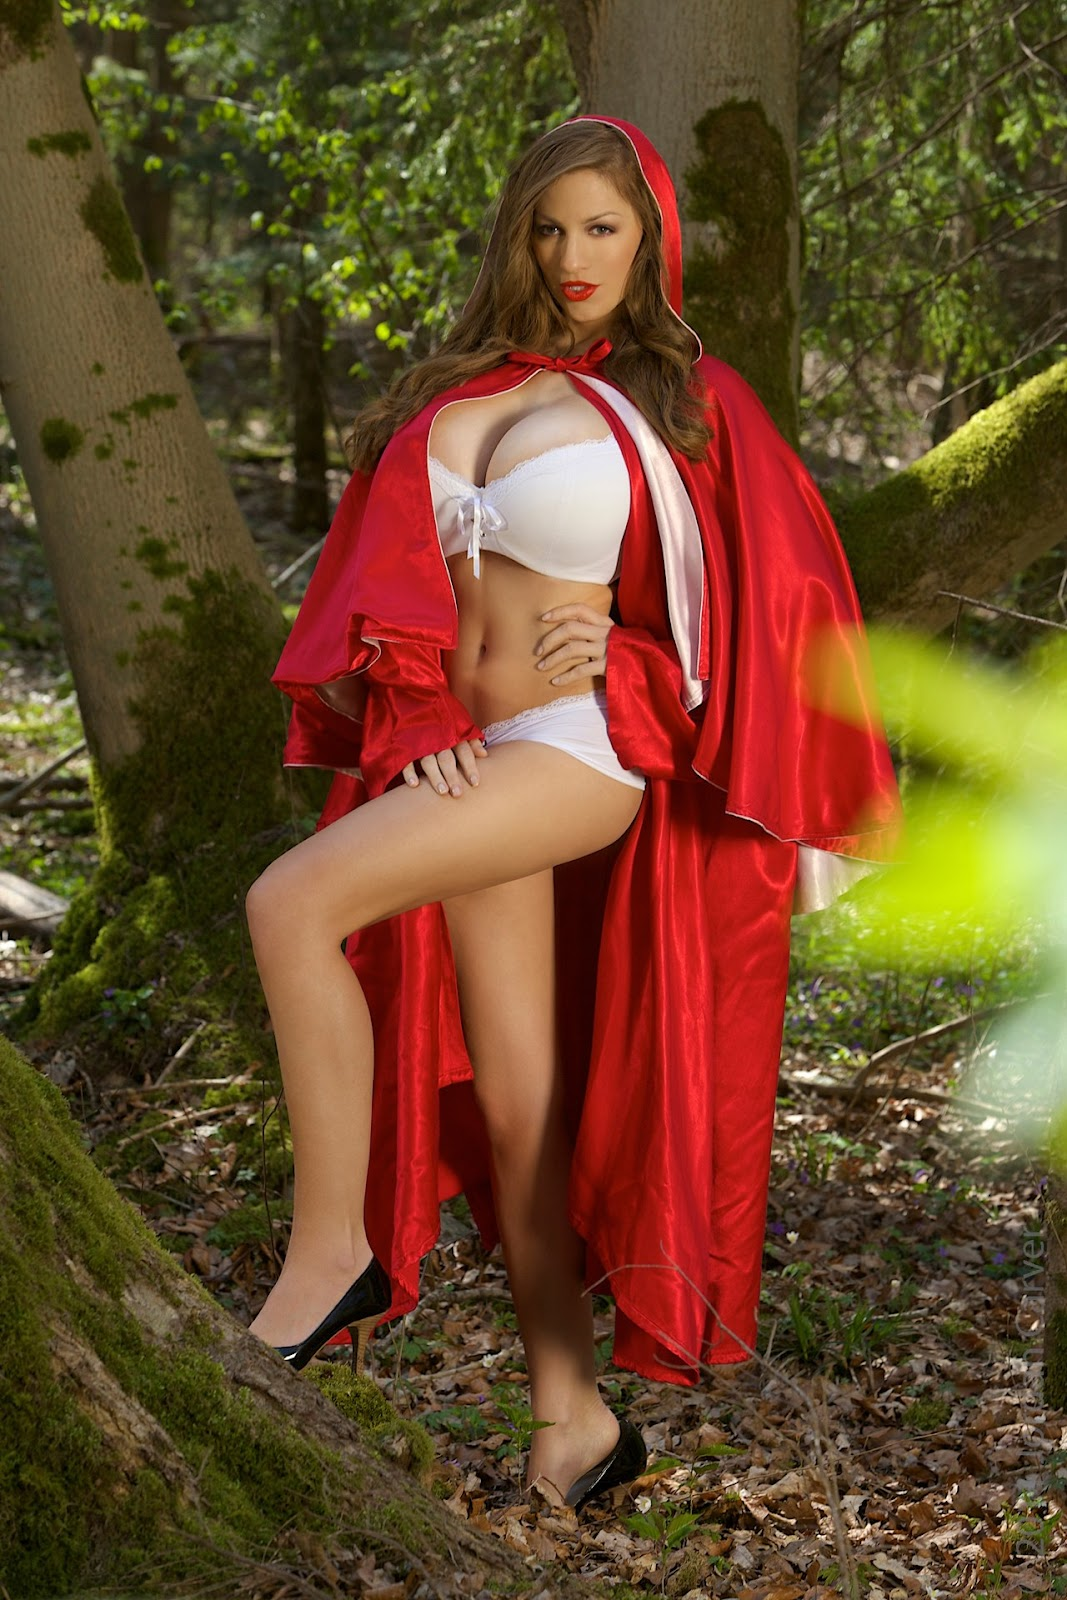 Jordan carver red riding hood